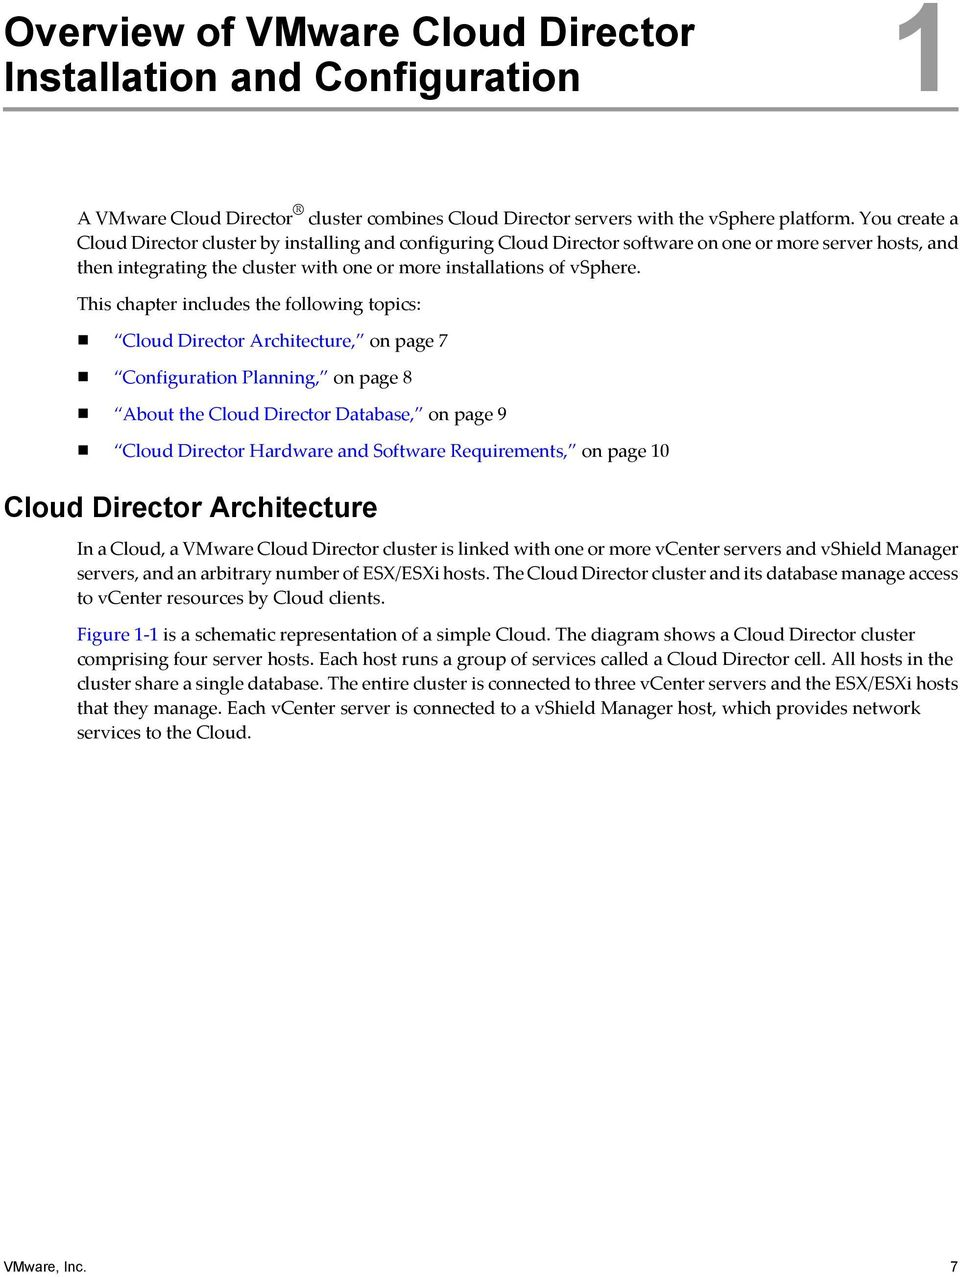 This chapter includes the following topics: Cloud Director Architecture, on page 7 Configuration Planning, on page 8 About the Cloud Director Database, on page 9 Cloud Director Hardware and Software